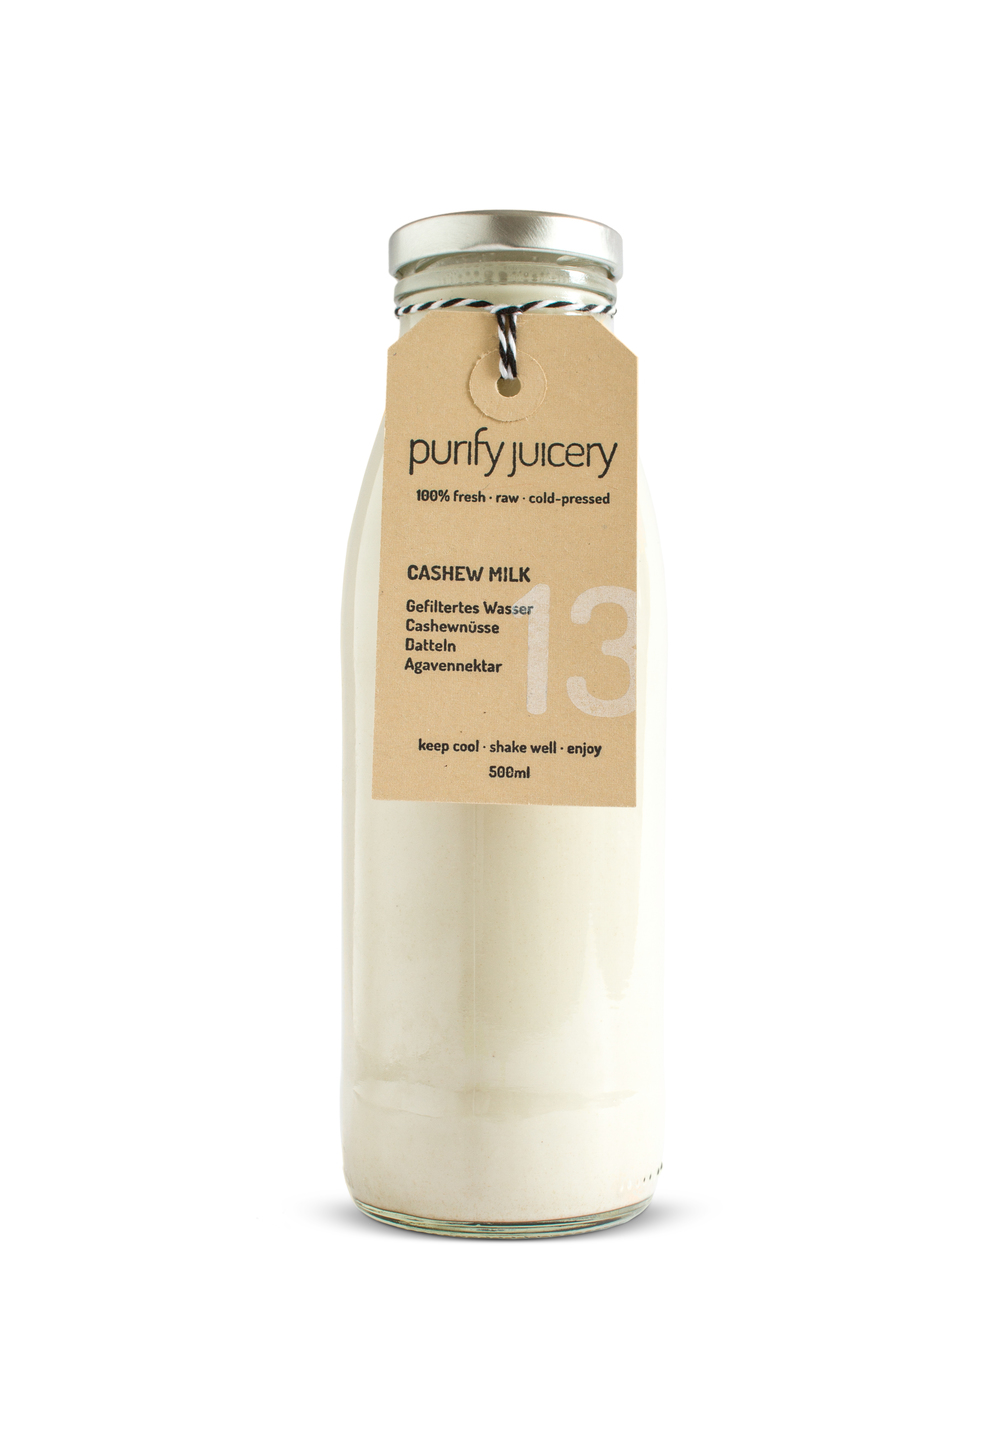 Purify_Juicery_bottles_13.jpg